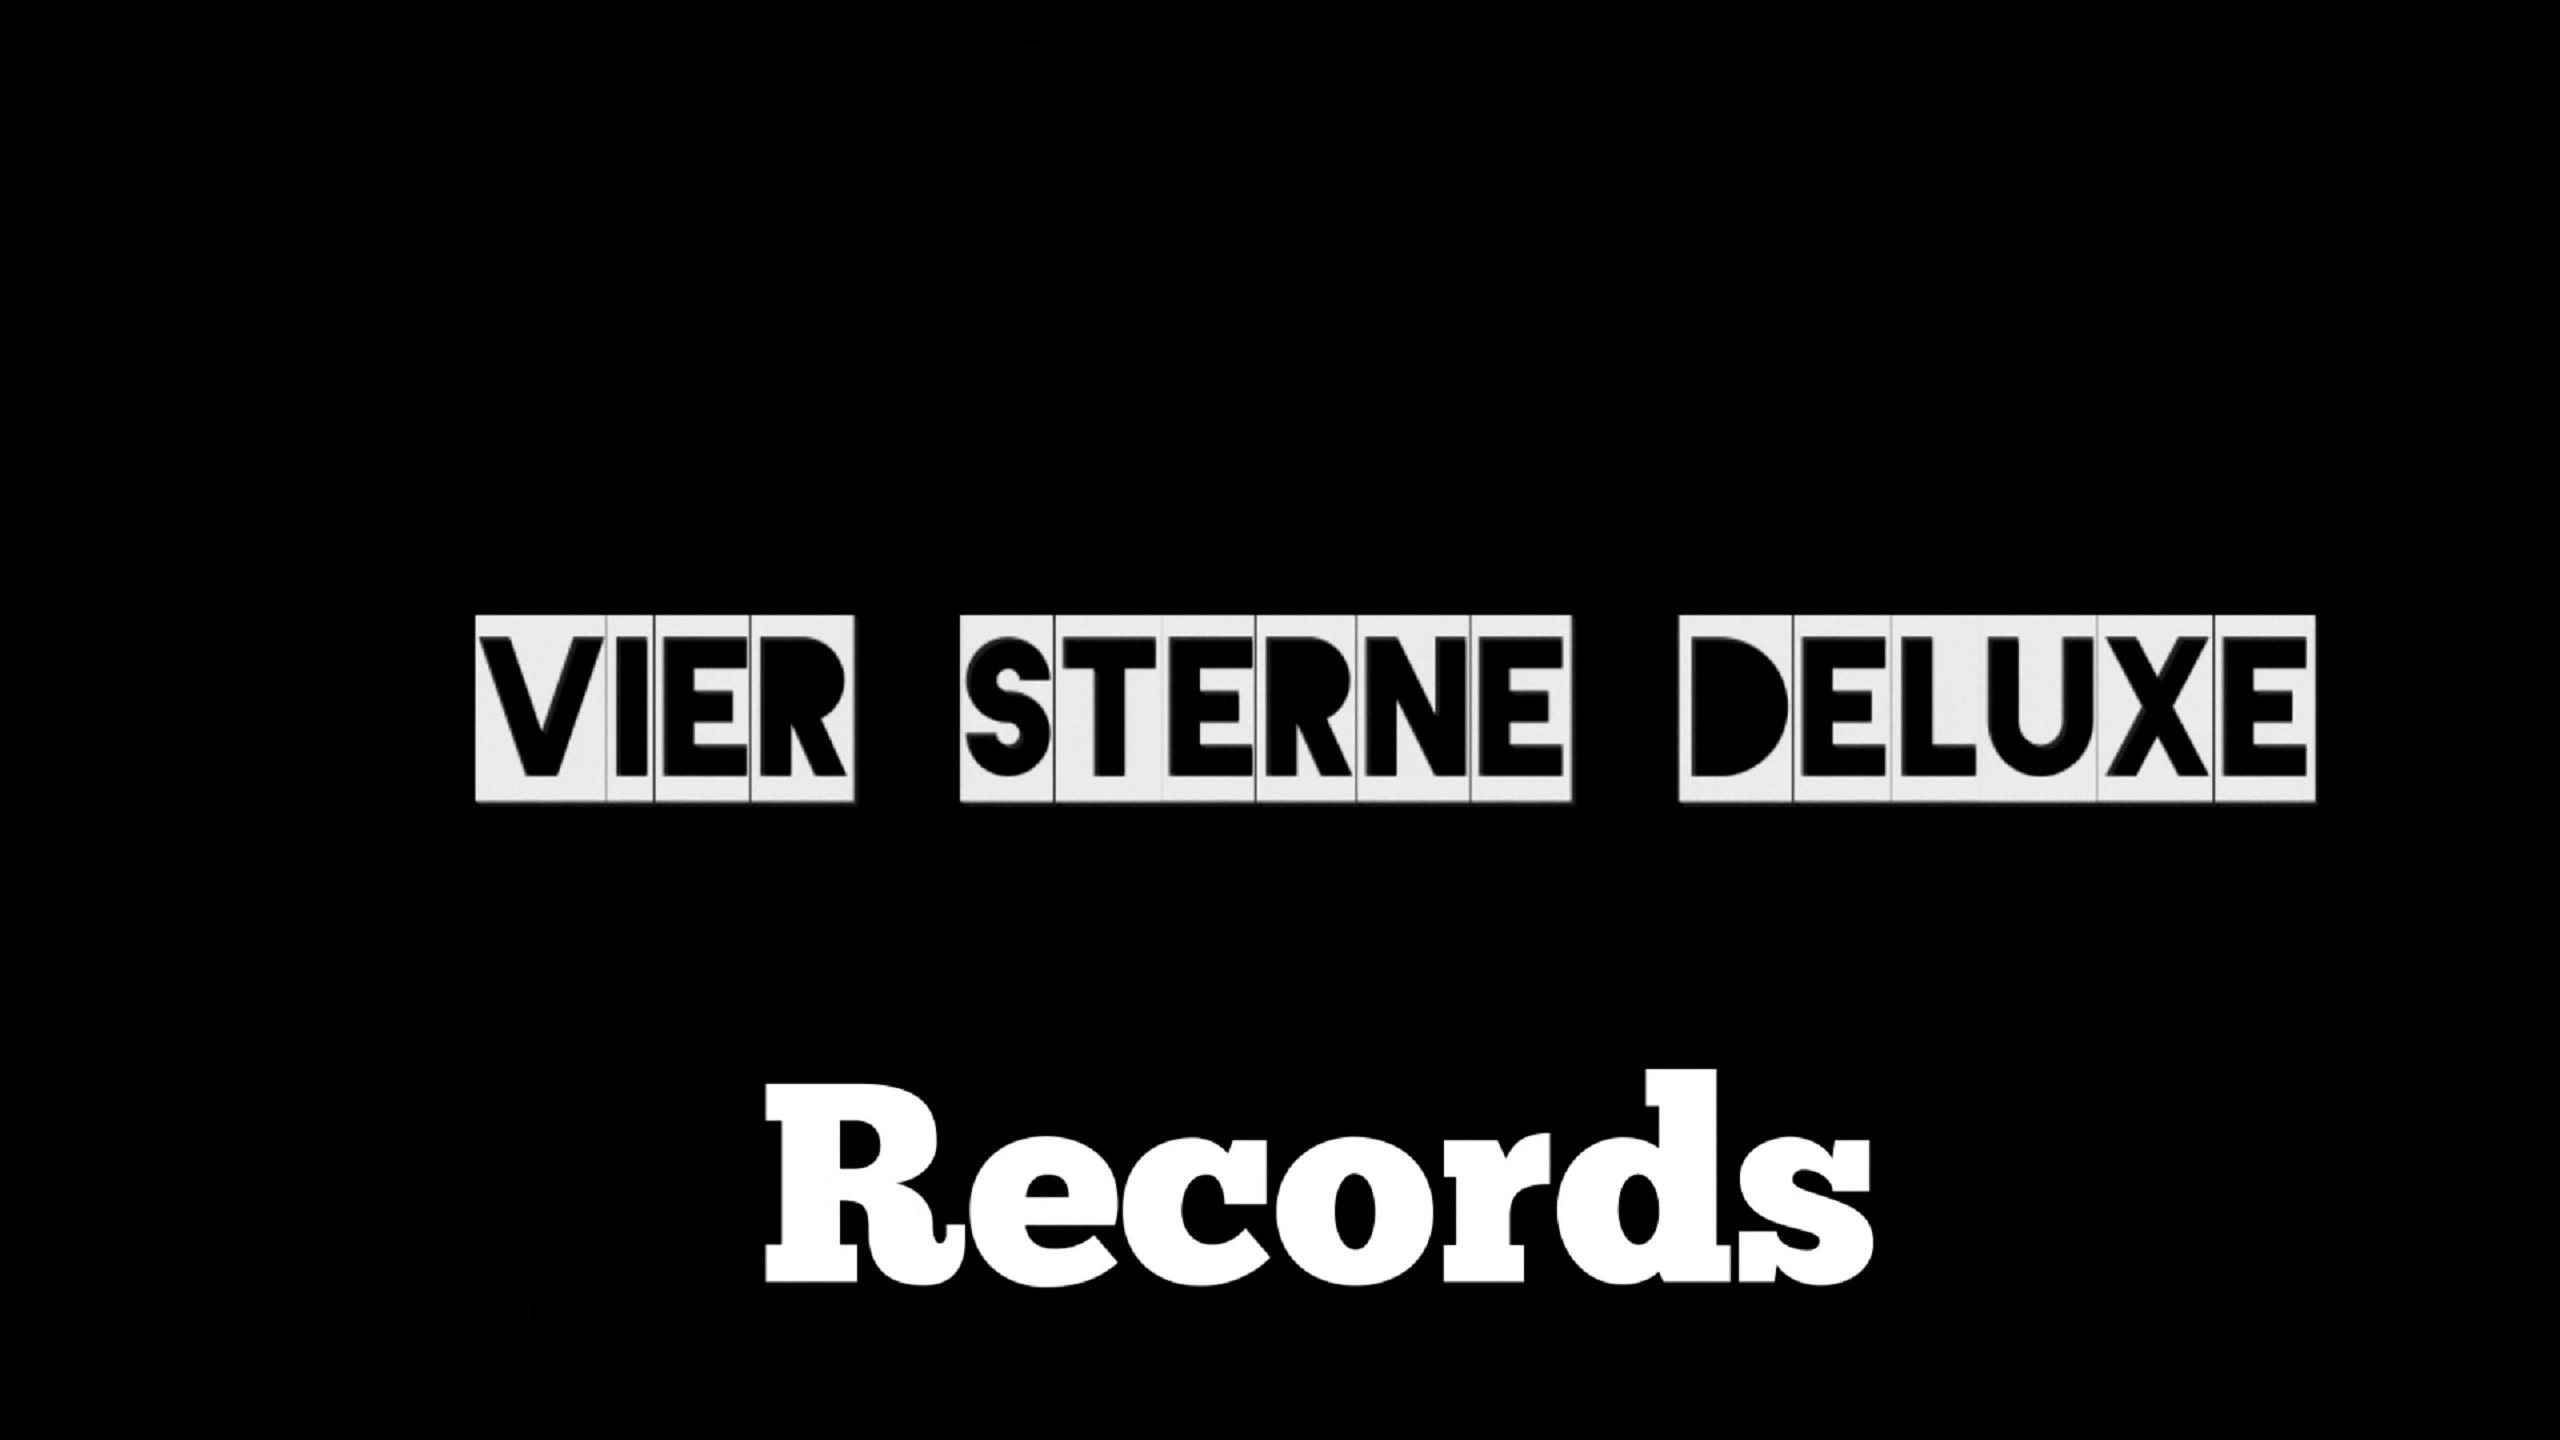 Vier Sterne Deluxe